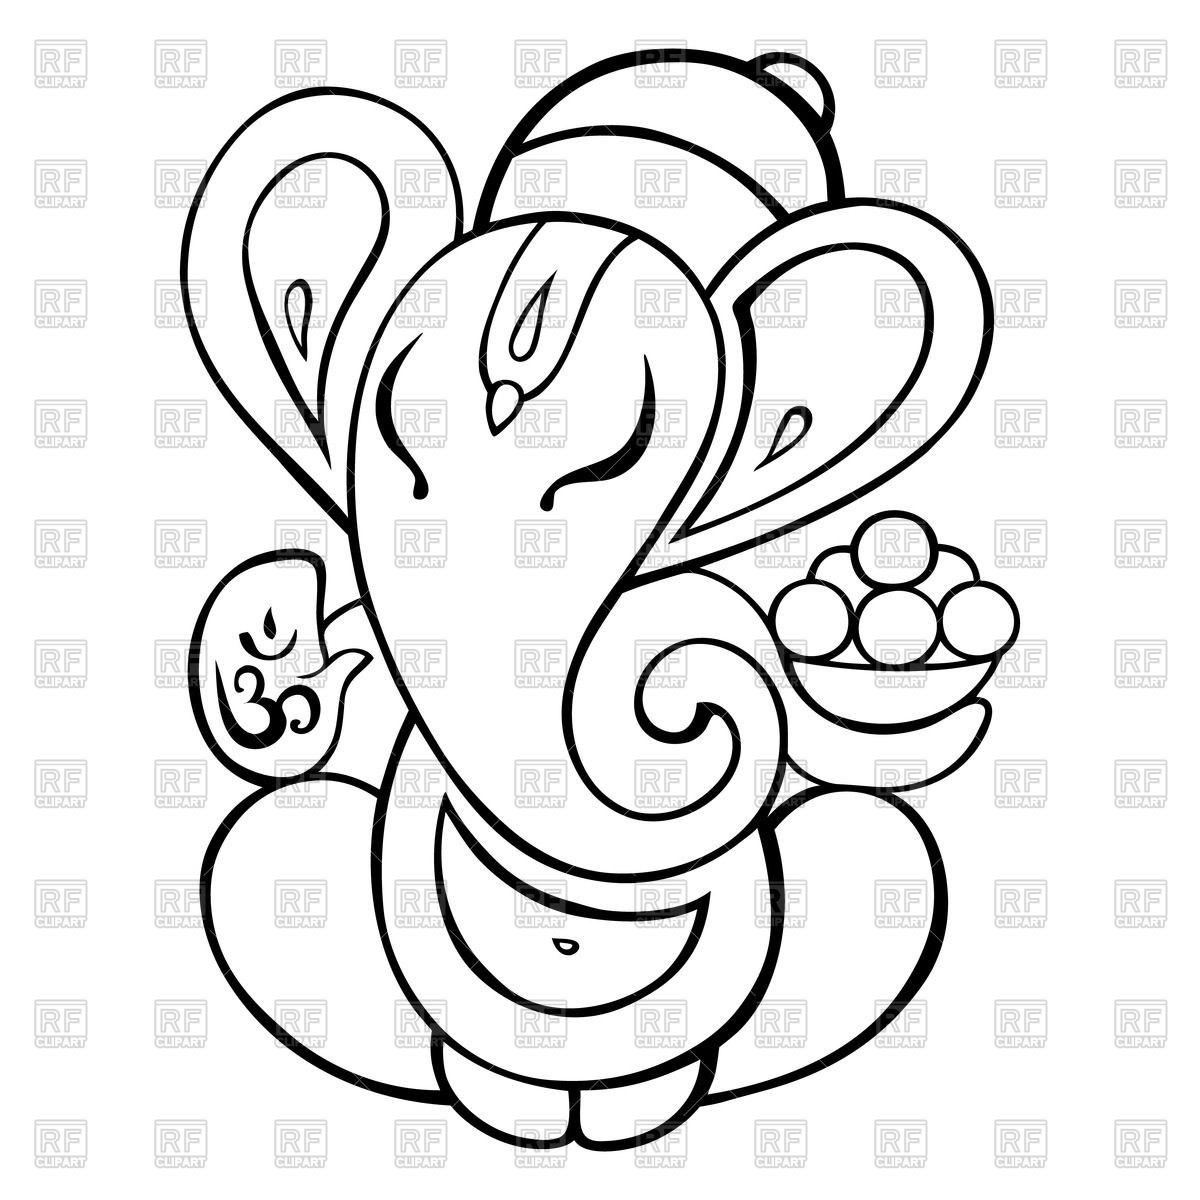 Ganesh Pencil Drawing Free Download Best Ganesh Pencil Drawing On